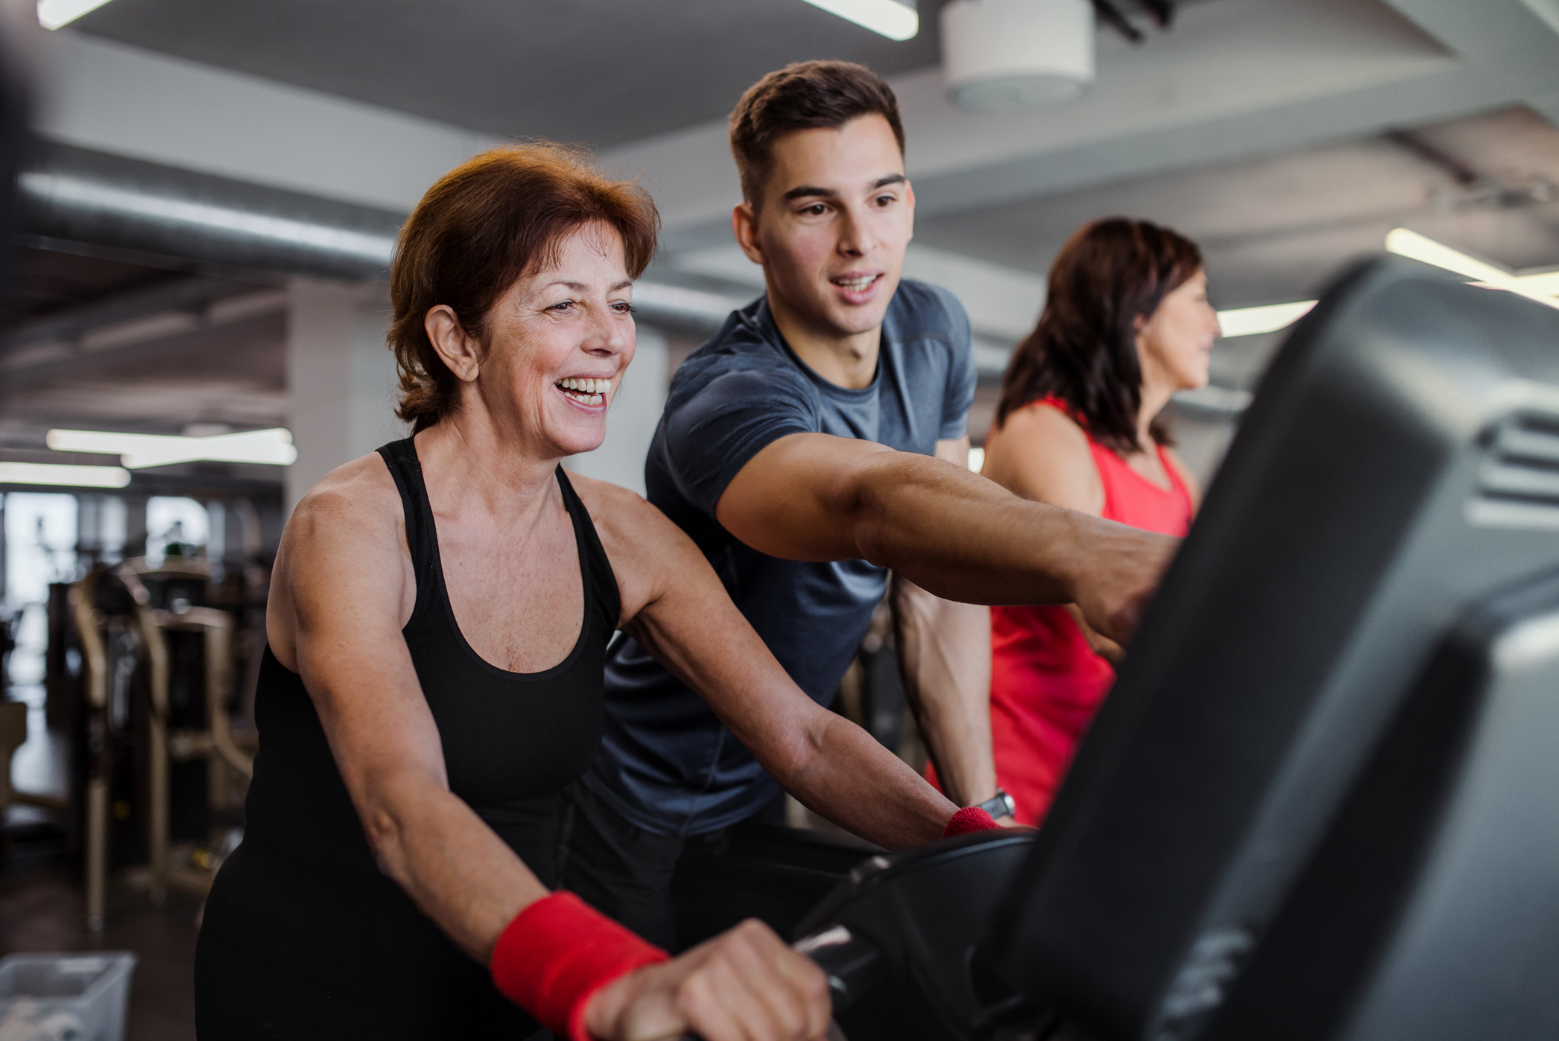 A young male fitness instructor guiding a senior citiA young male fitness instructor guiding a senior citizen woman as she cycles on a gym spin-cyclezen woman as she cycles on a gym spin-cycle